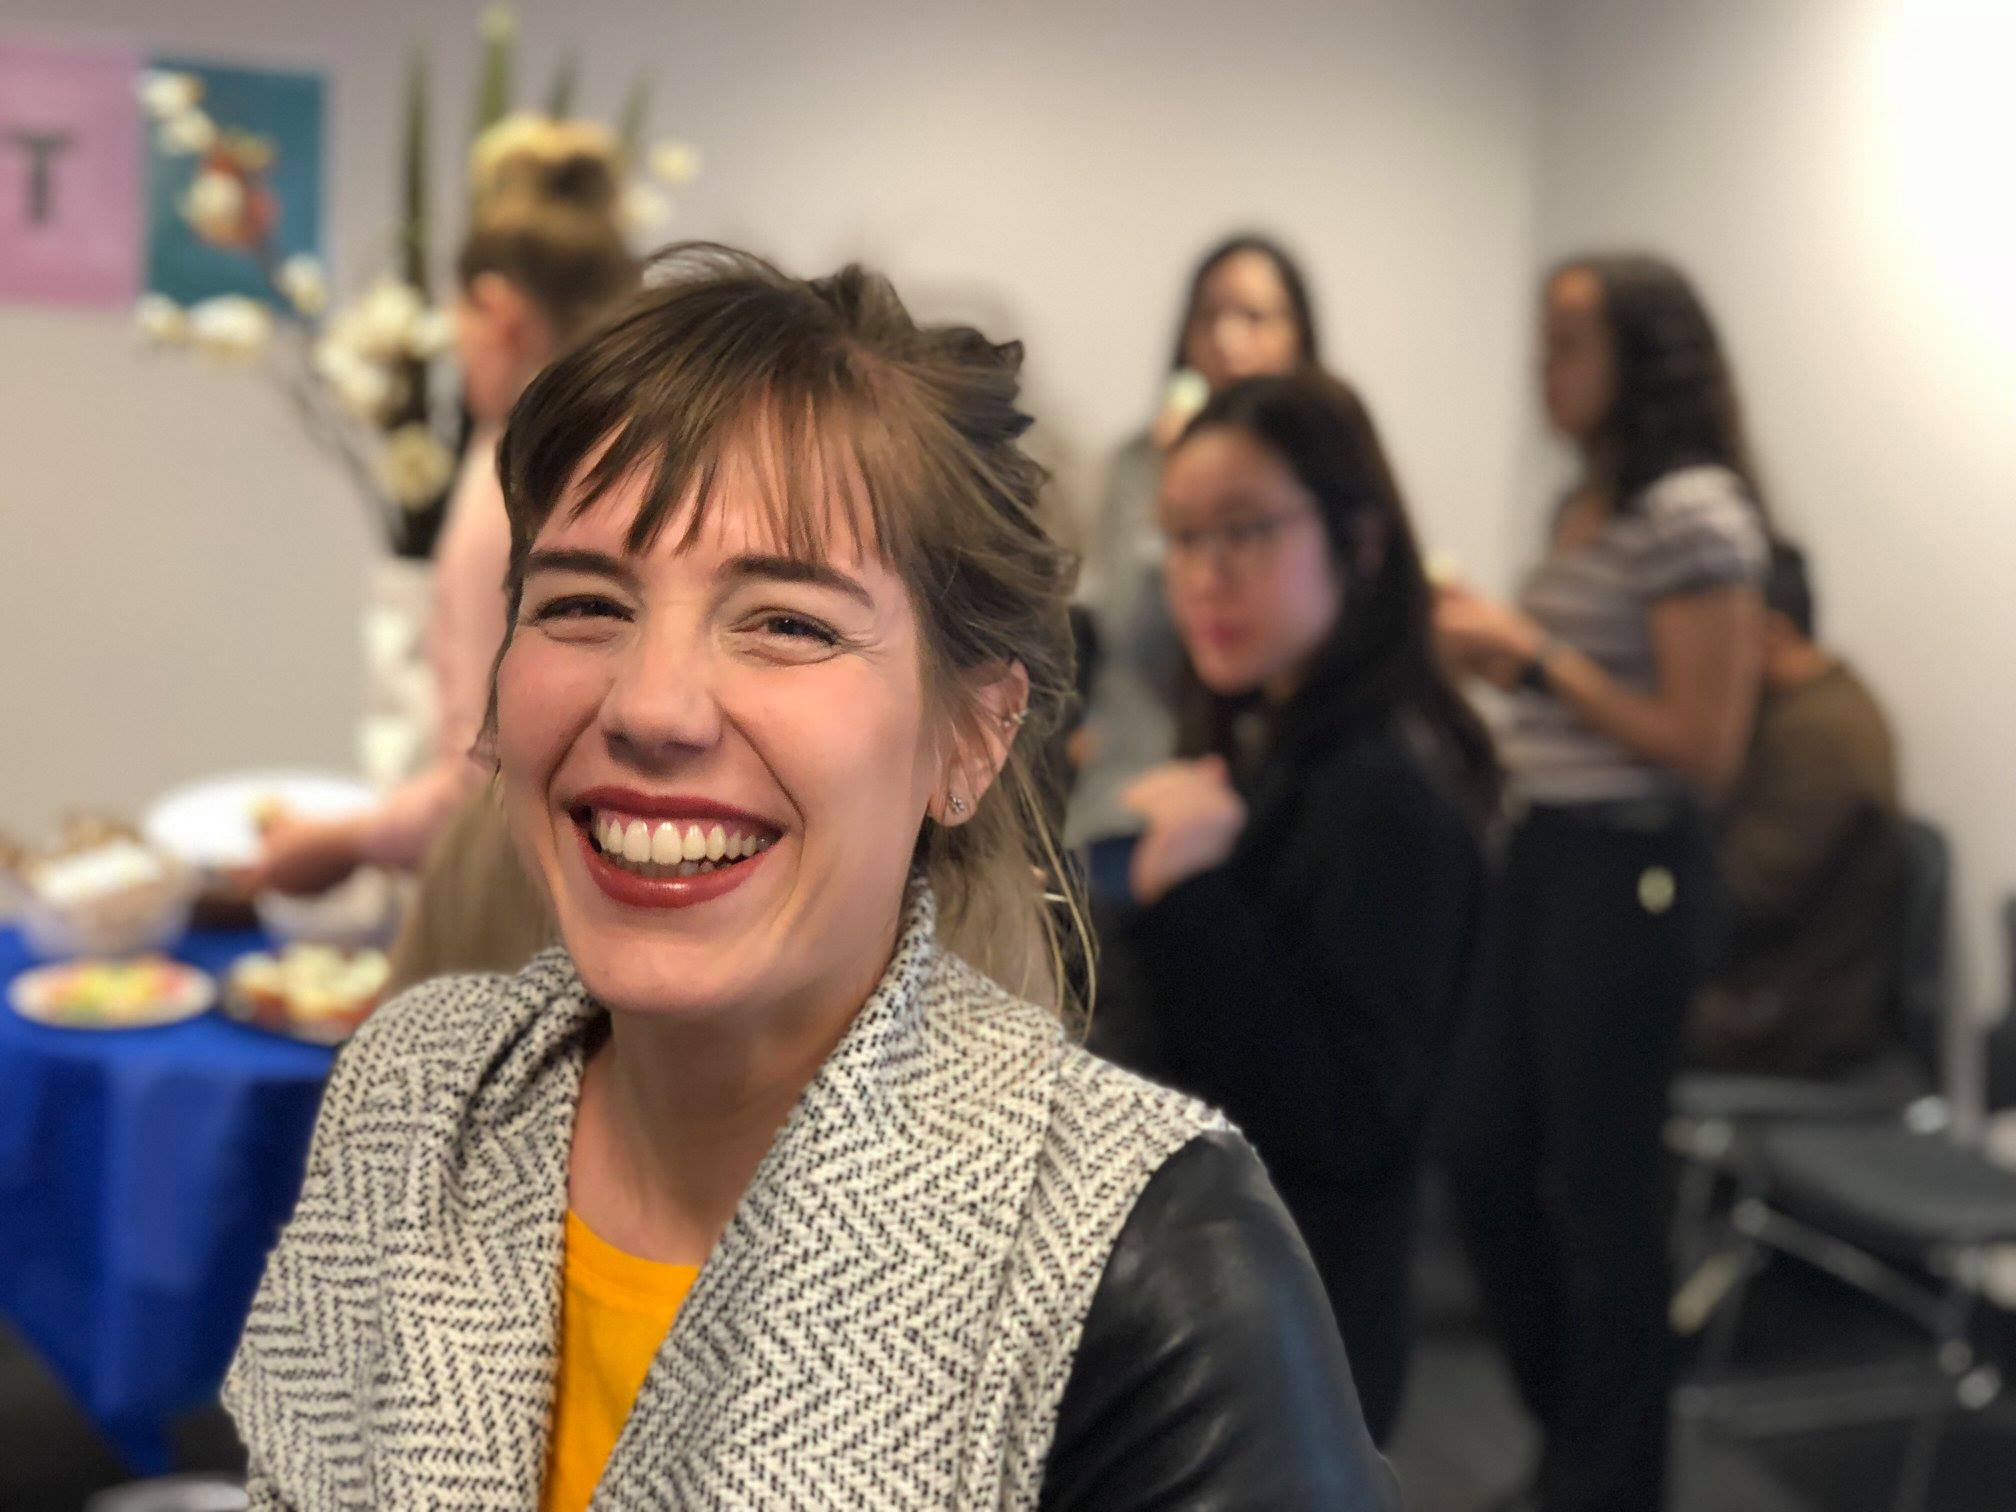 Girl smiling at networking event